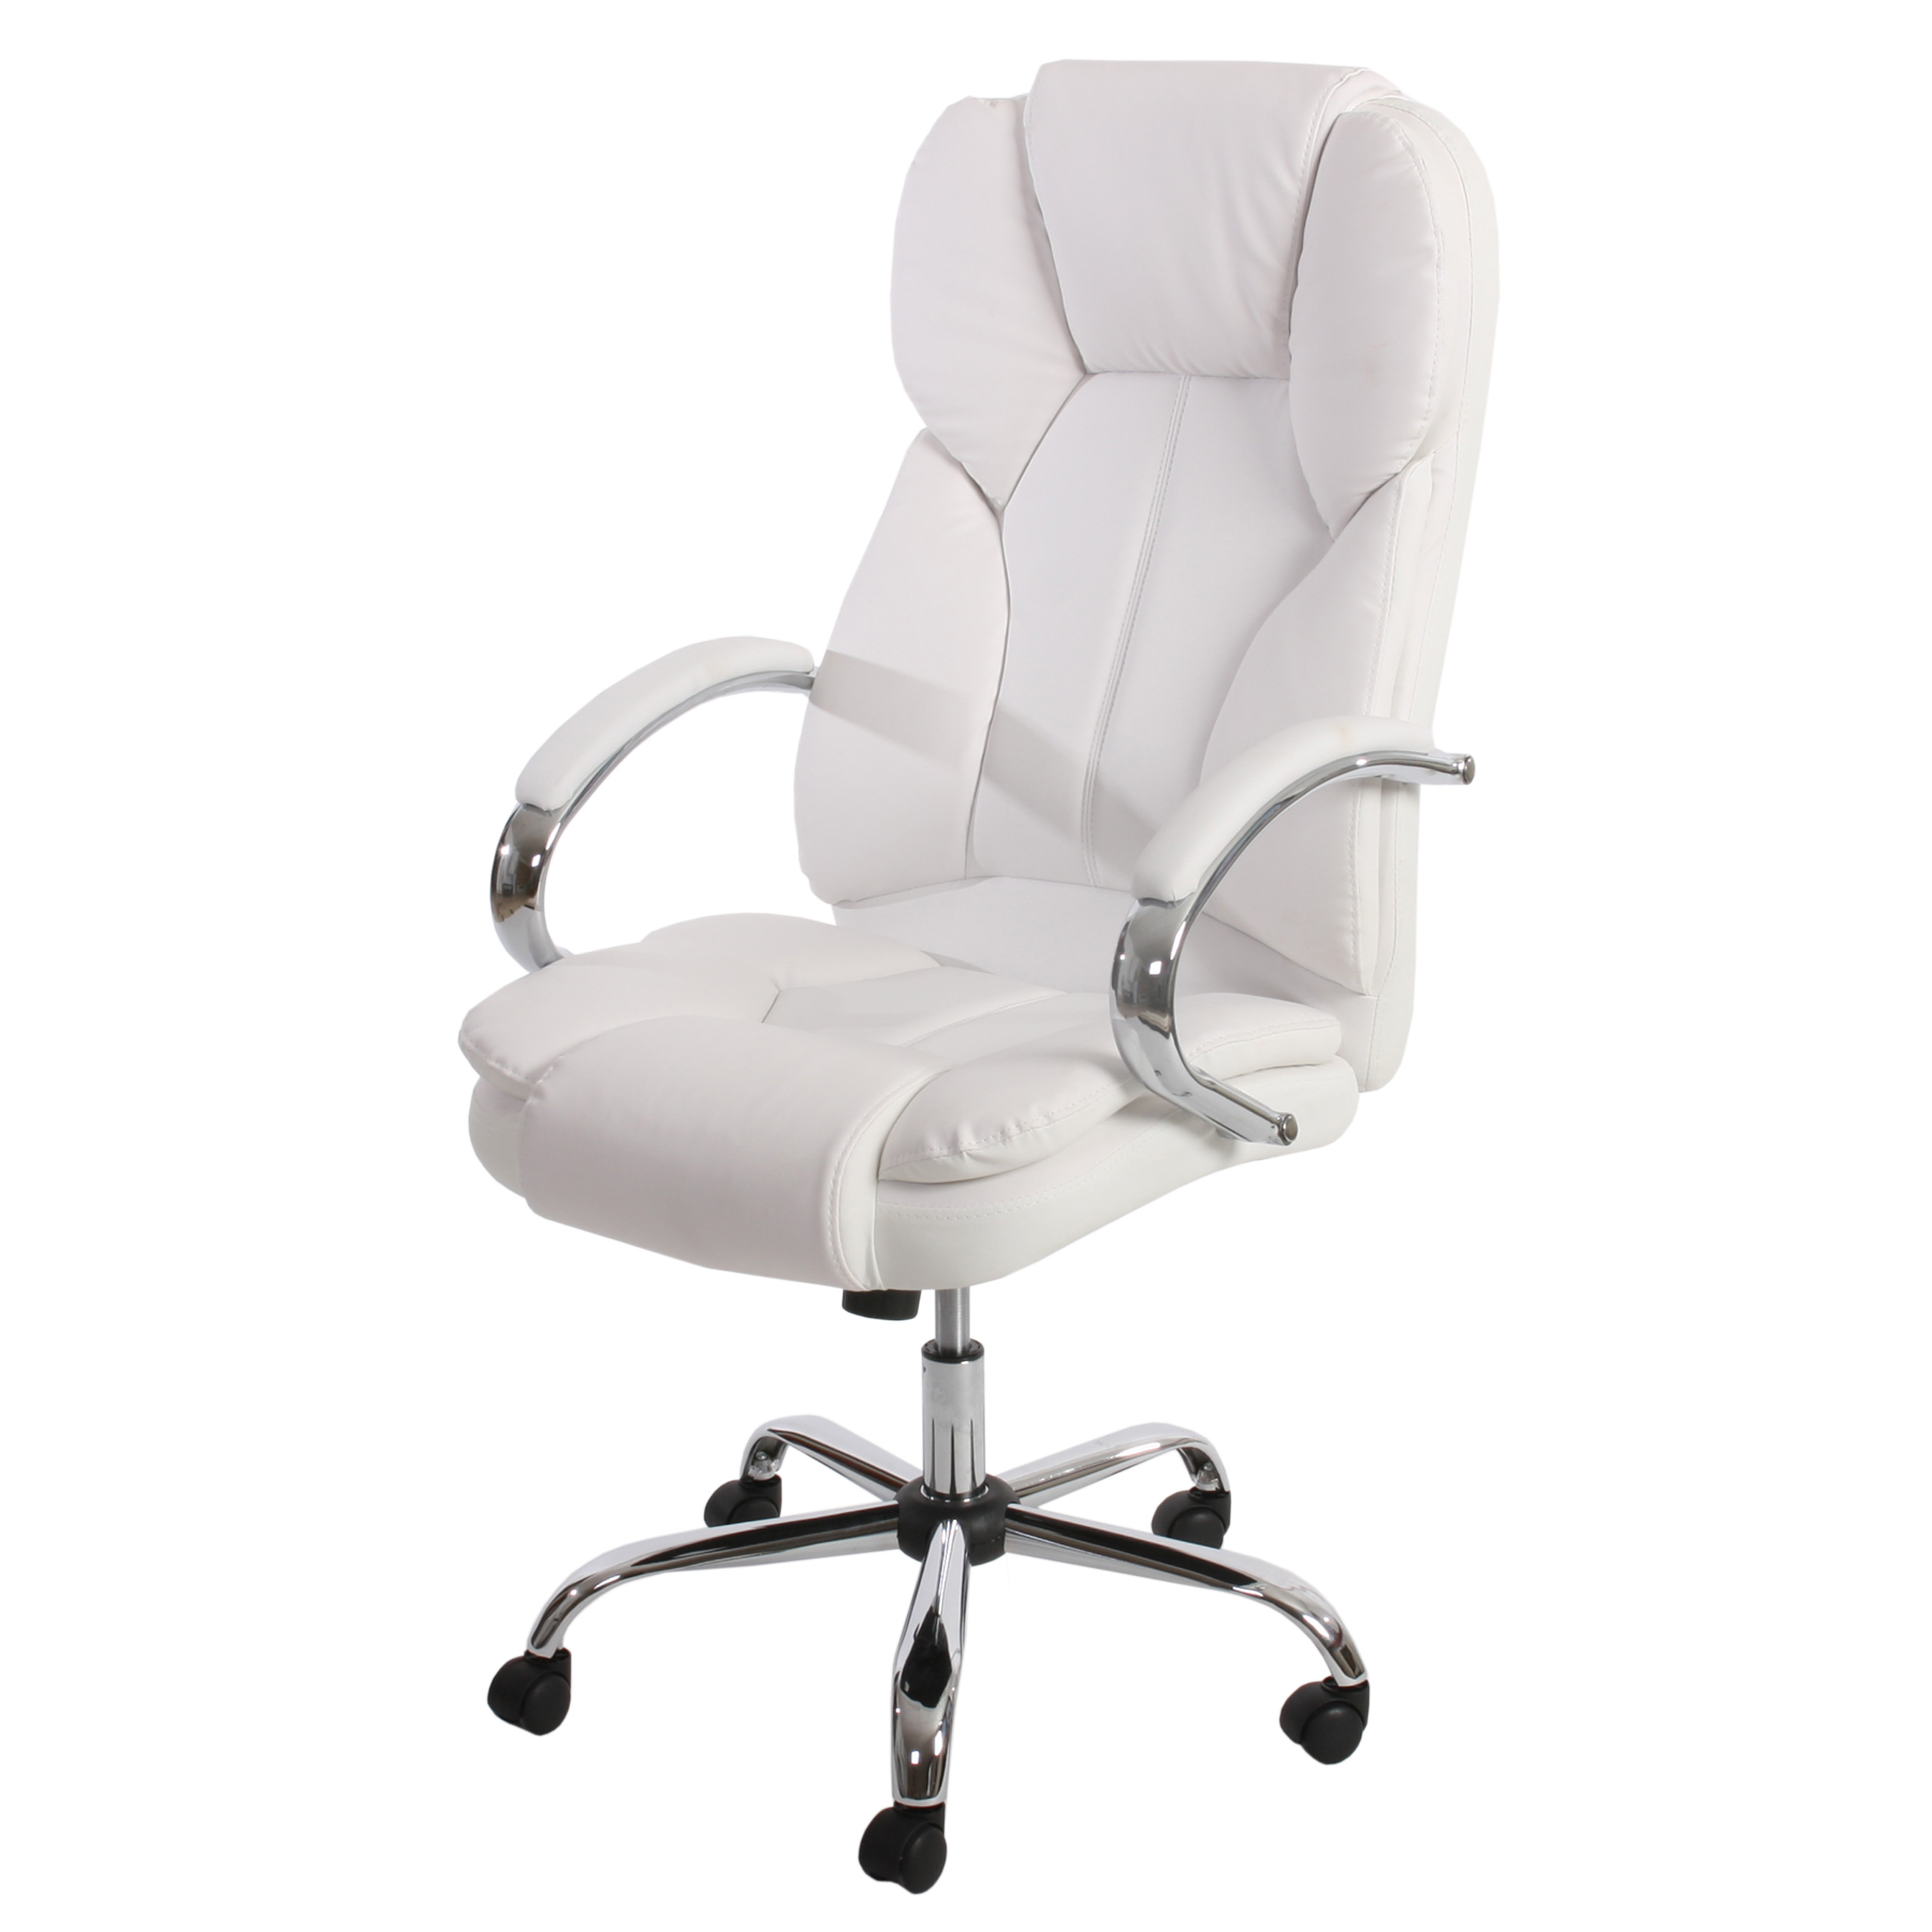 fauteuil de bureau pro kansas xxl pivotant charge 150kg similicuir blanc ebay. Black Bedroom Furniture Sets. Home Design Ideas